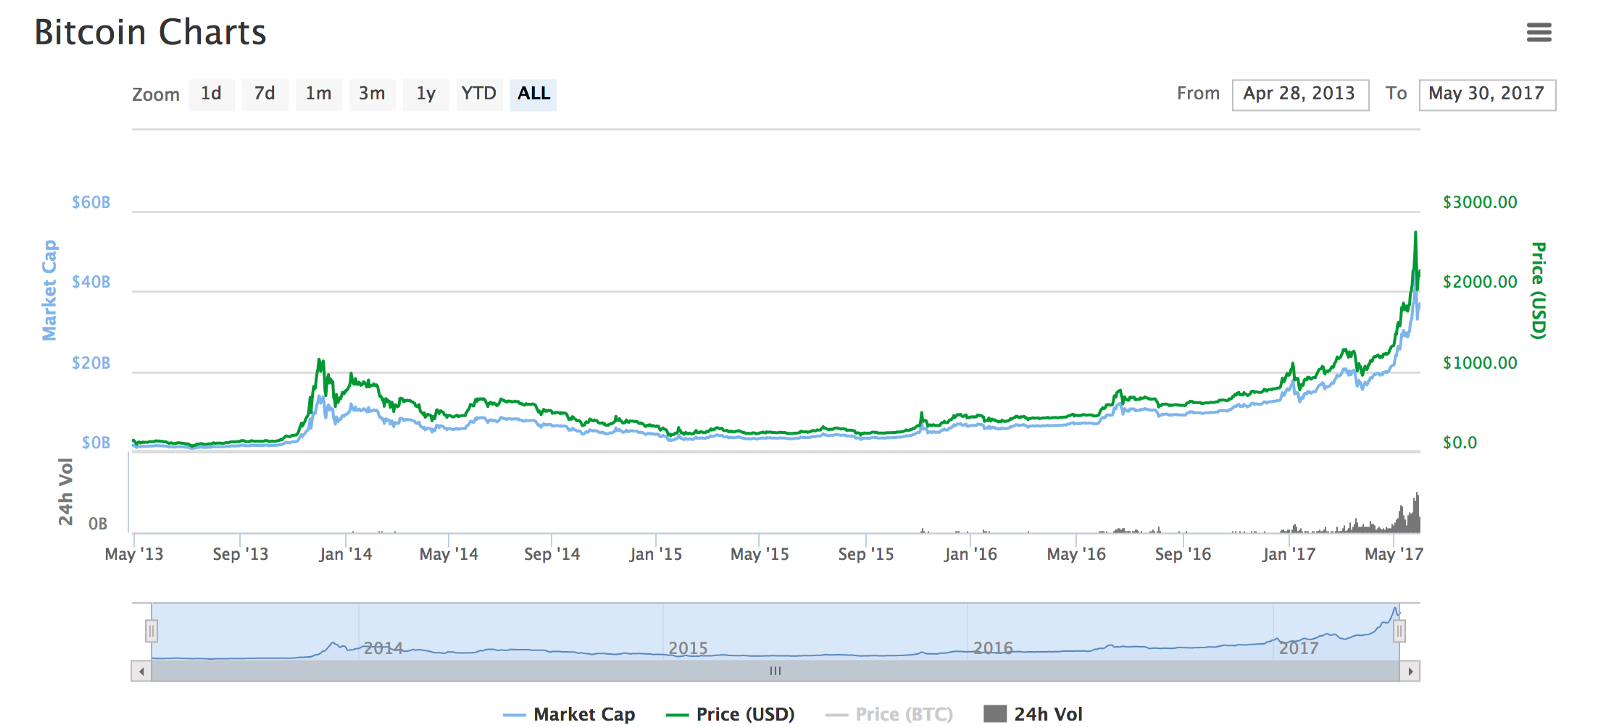 Bitcoins Lifetime Includes Market Cap And Price In USD Notice The Spike 2013 Small Ones 2015 2016 Current Huge